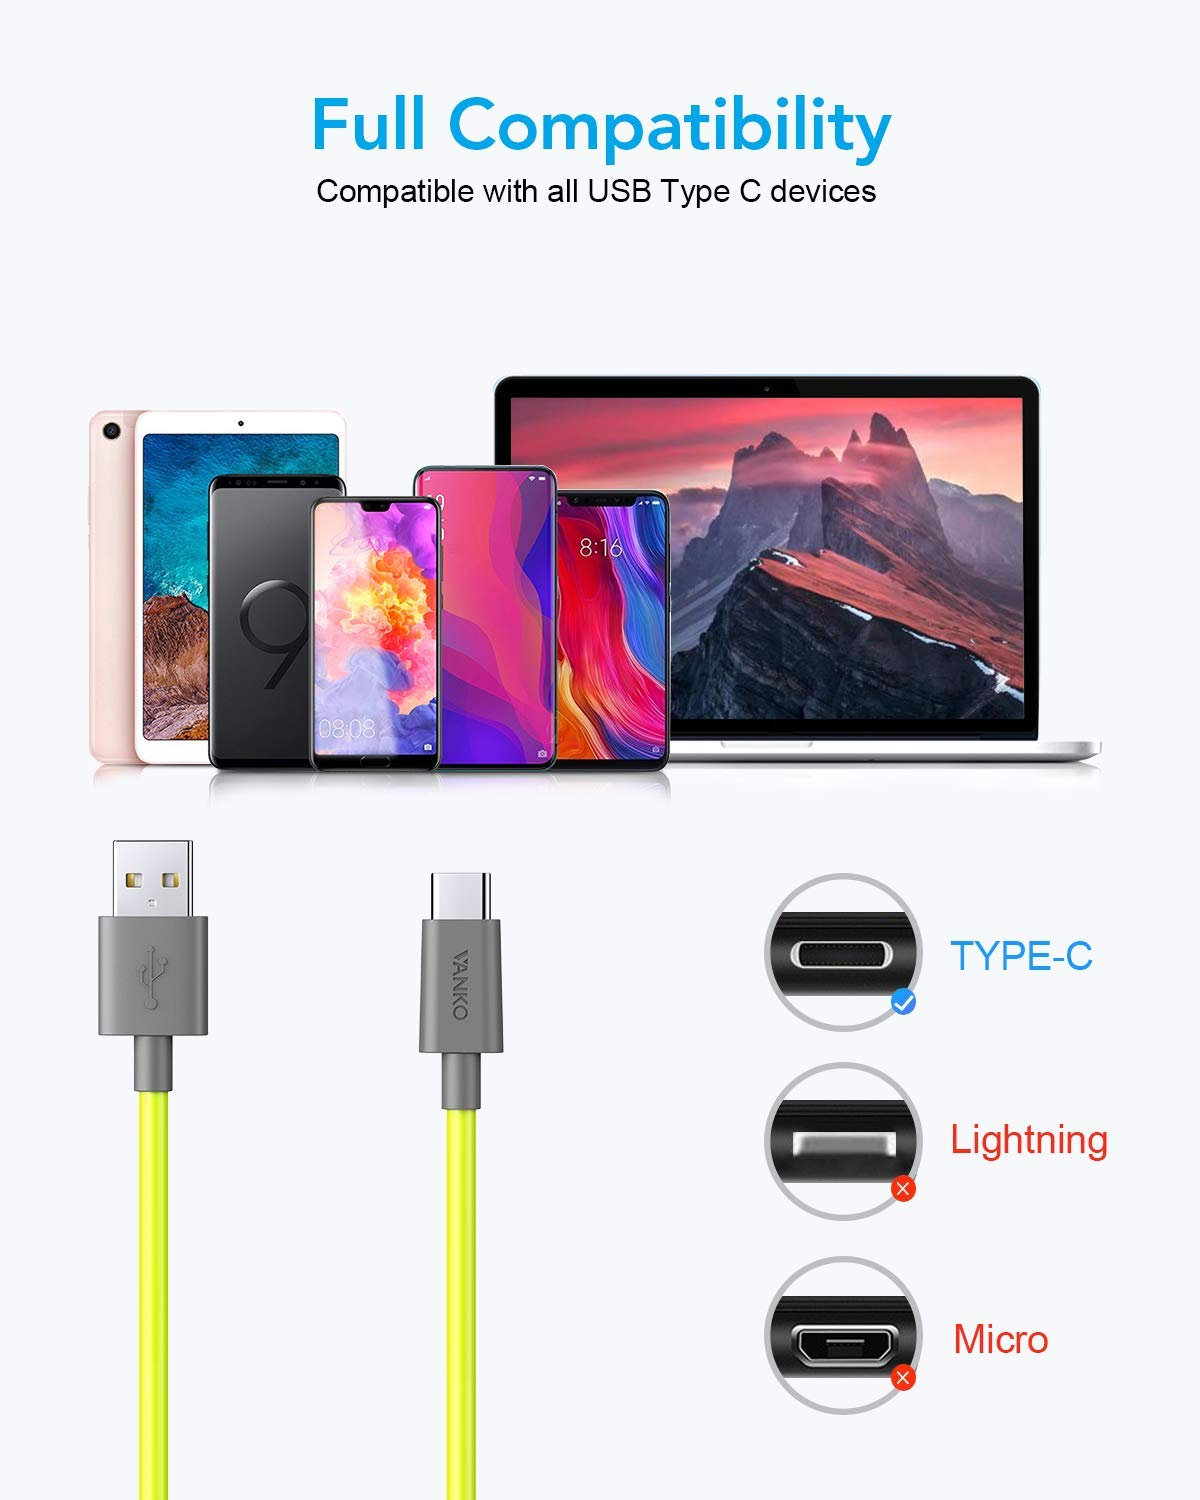 USB Type C Cable for Samsung Galaxy Note 9 8 S8 S9 S10 10 Plus,LG V50 V40 G8 G7 G6 Thinq VANKO Type-C Charger Cable Premium 3A Fast Charging Cord 6.6ft+3.3ft+1ft Moto Z Z3,Switch and More 3-Pack